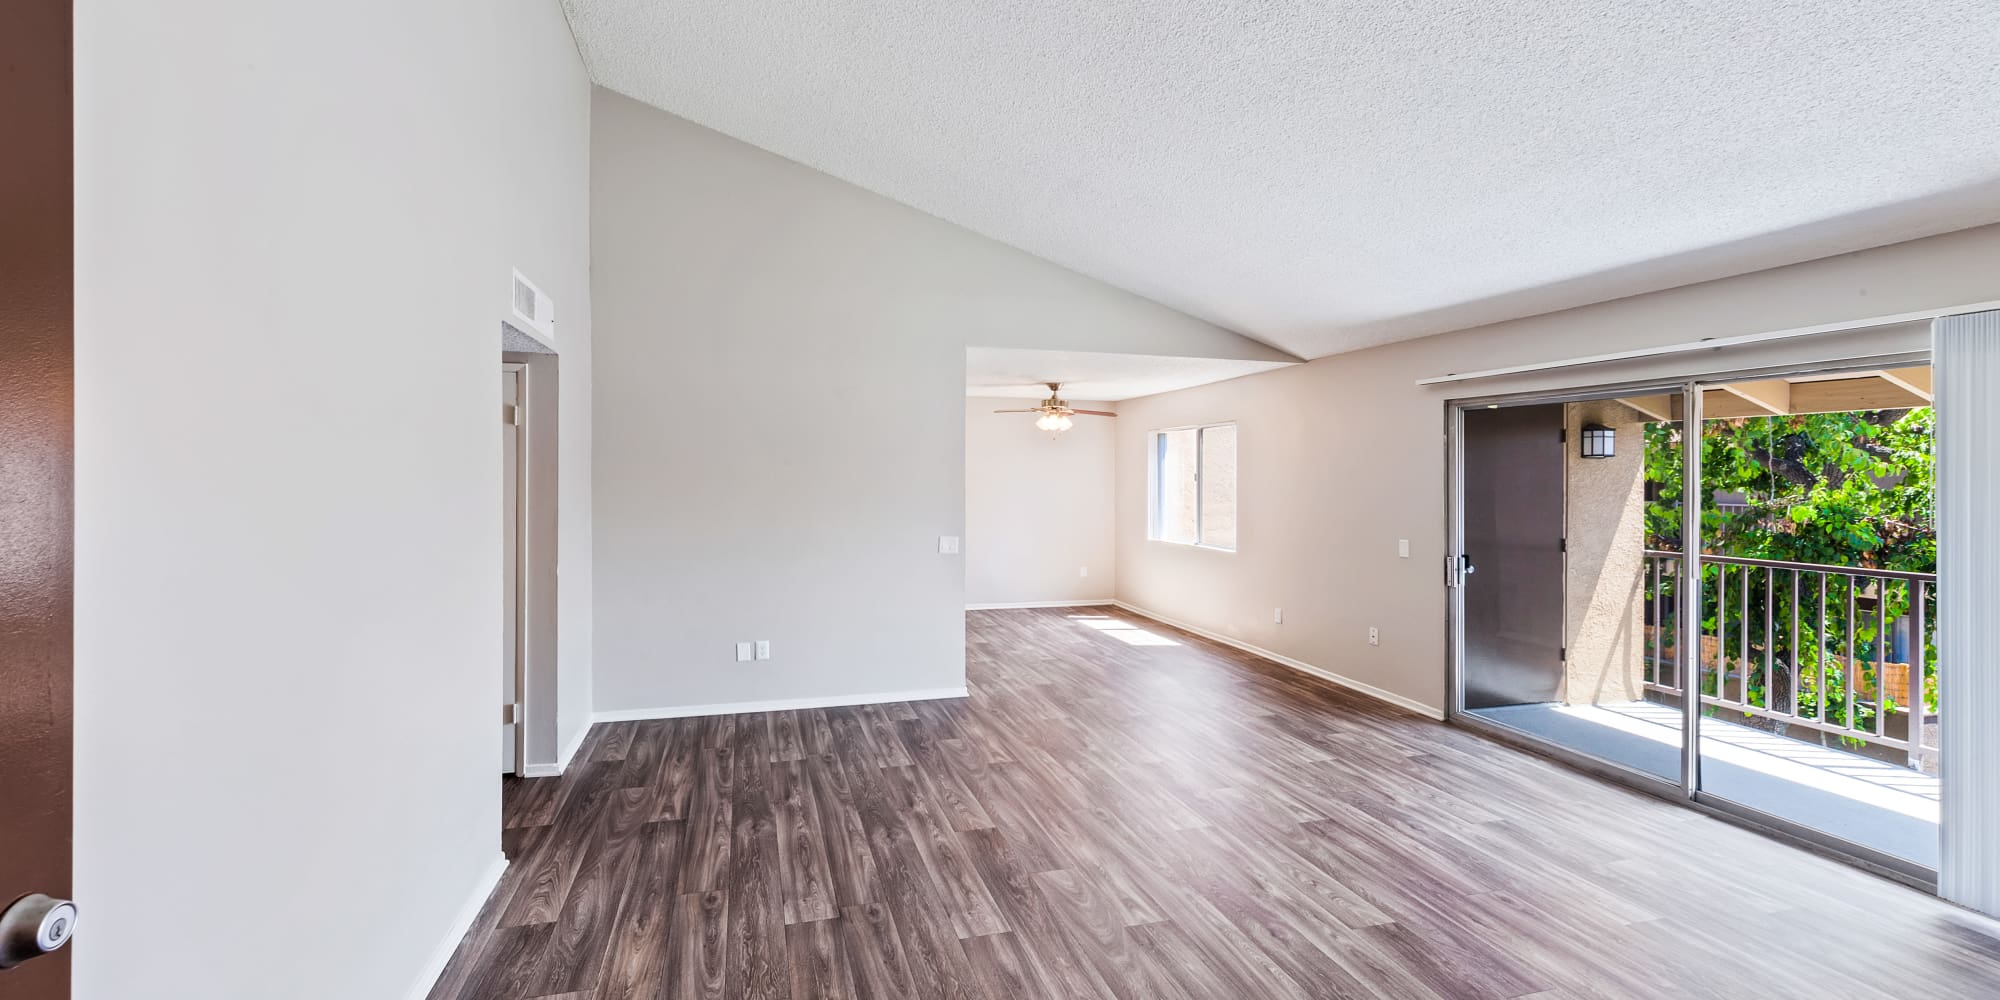 Spacious living room with patio access at West Fifth Apartments in Ontario, California